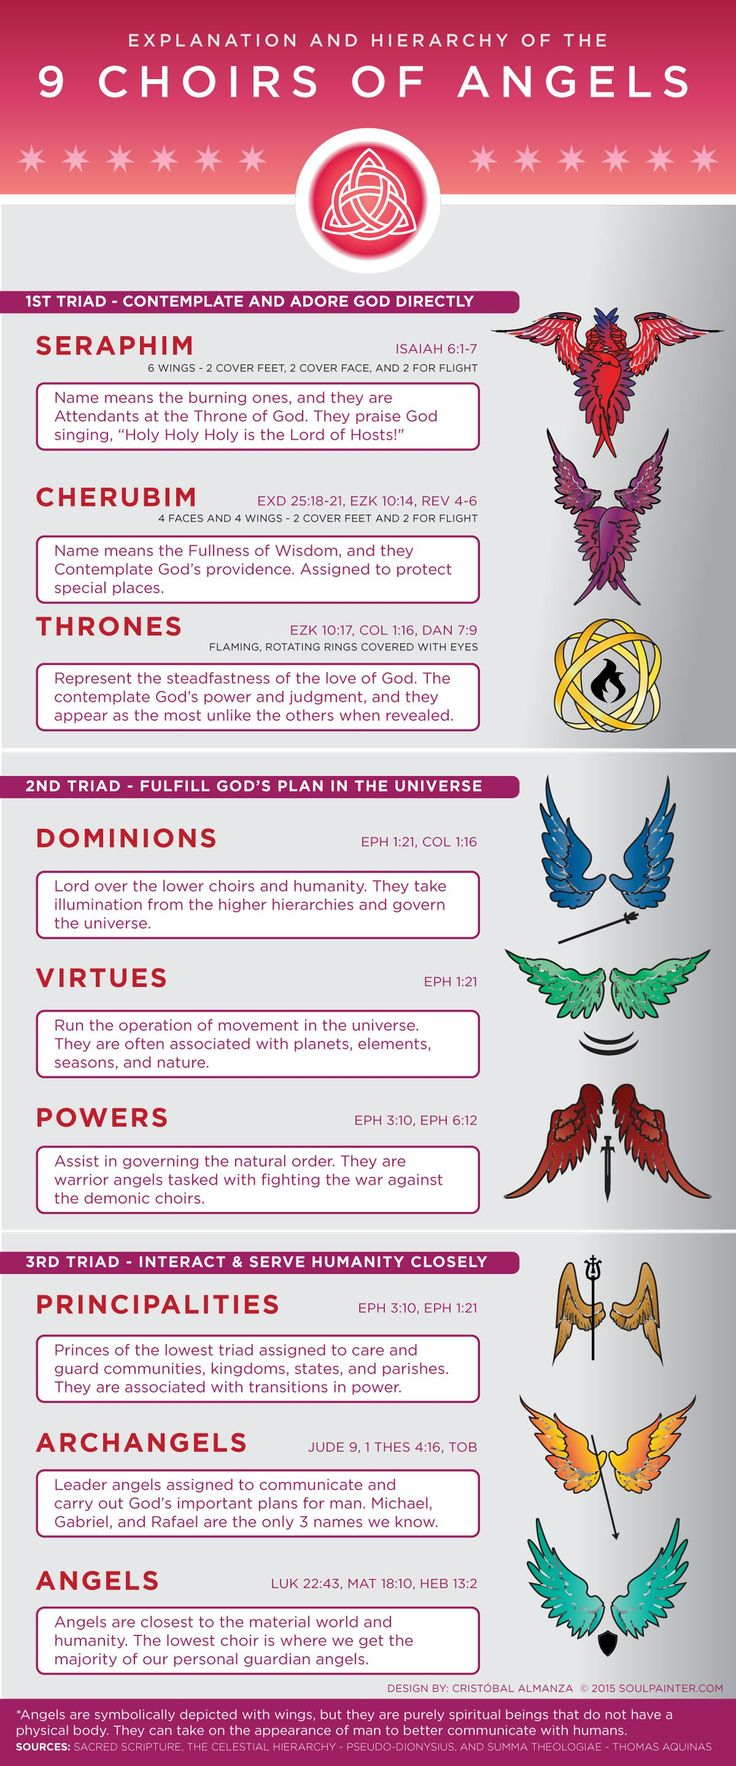 Explanation and Hierarchy of the 9 Choirs of Angels